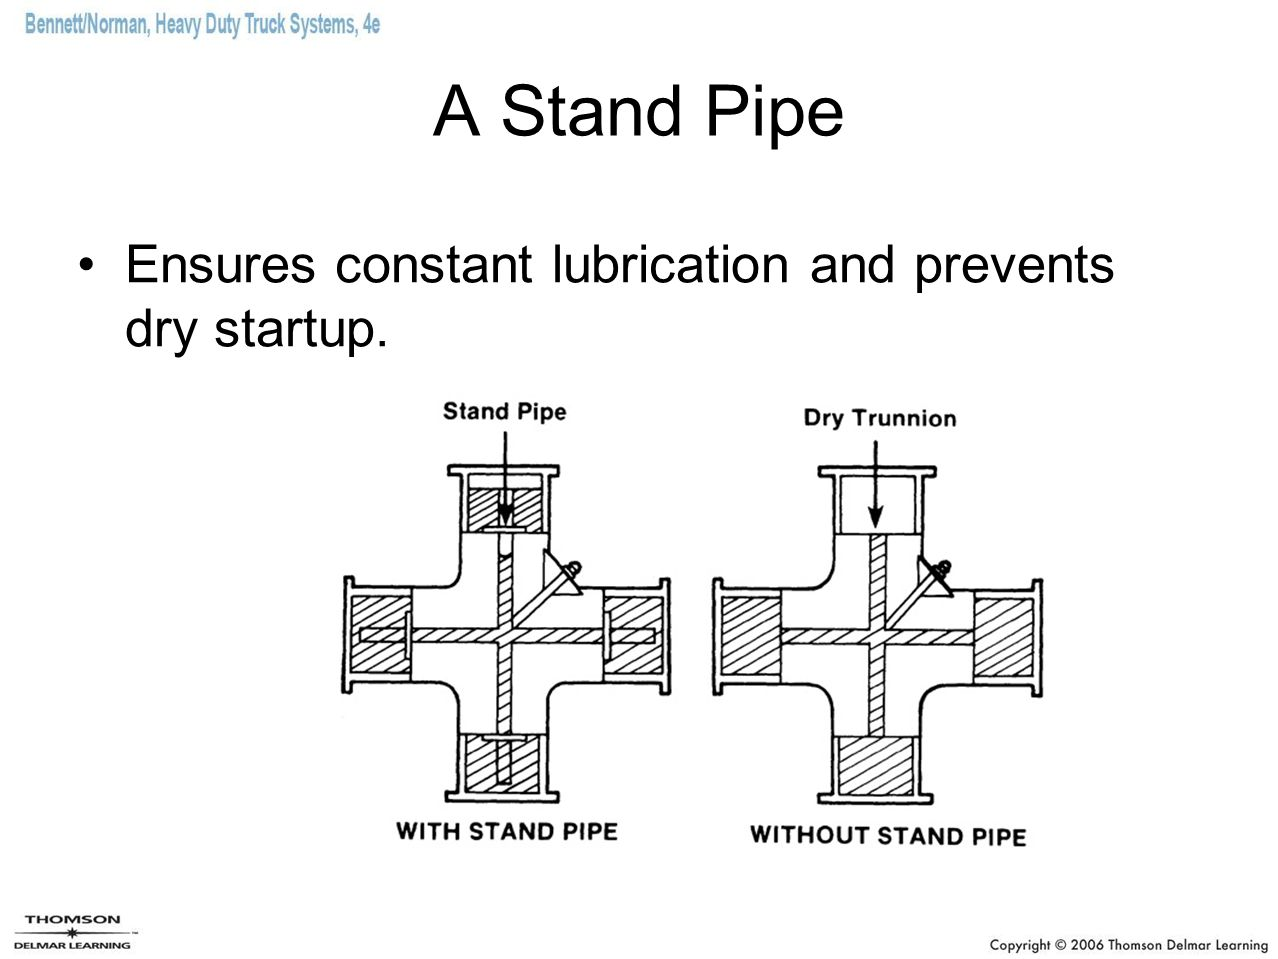 A Stand Pipe Ensures constant lubrication and prevents dry startup.